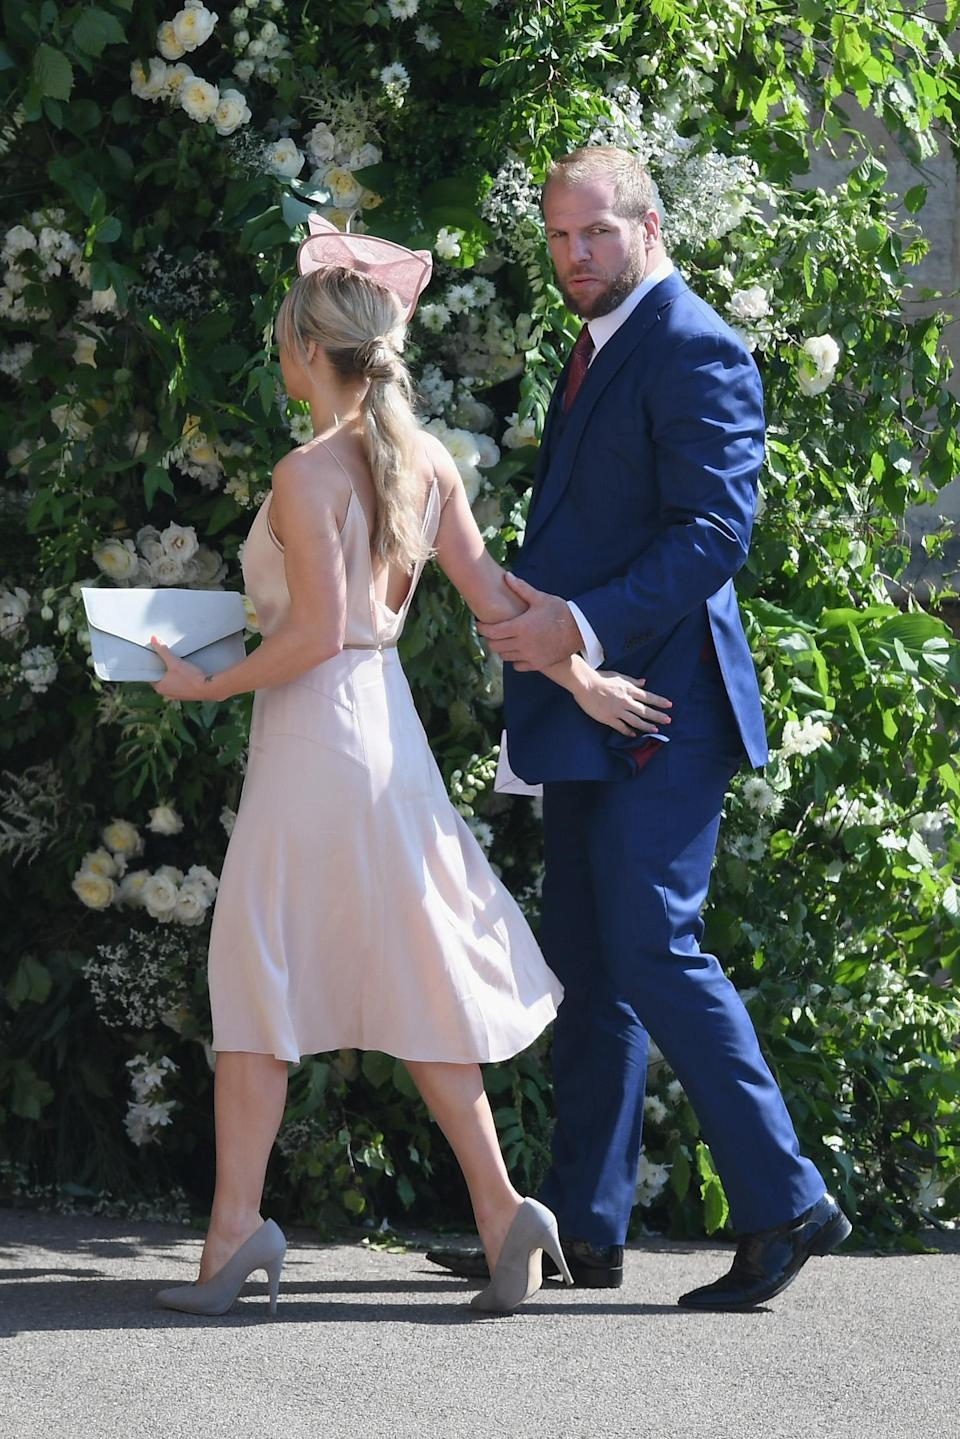 <p>Rugby star James Heskell attends with girlfriend, Chloe Madeley, chosing to attend the royal wedding instead of supporting Wasps in the premiership semi-final. [Photo: Getty] </p>